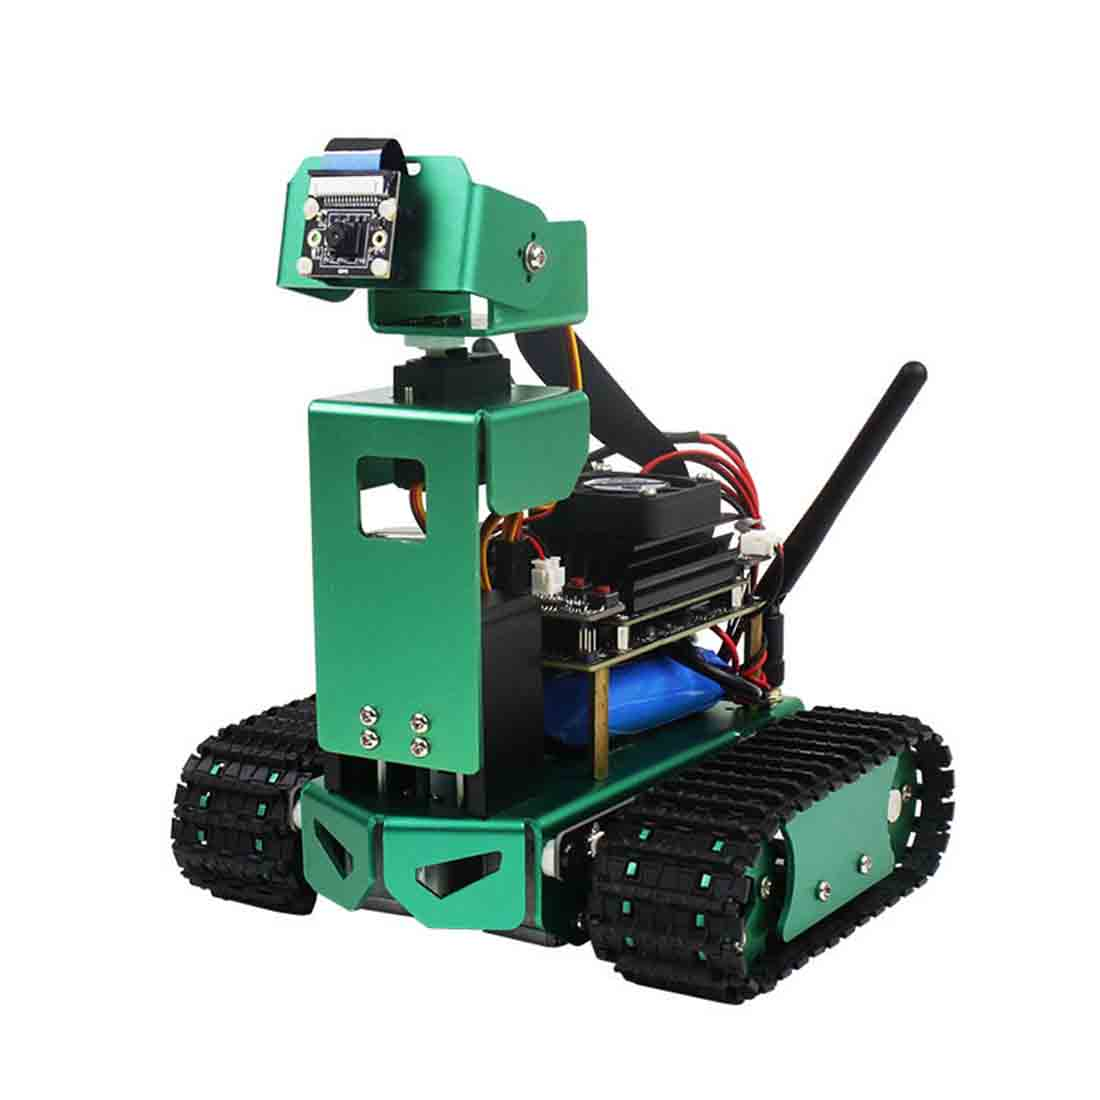 Artificial Intelligence Car DIY 3DOF Robot Car Kit With/Without Development Board For Jetson Nano(Adjustable Height) Educational